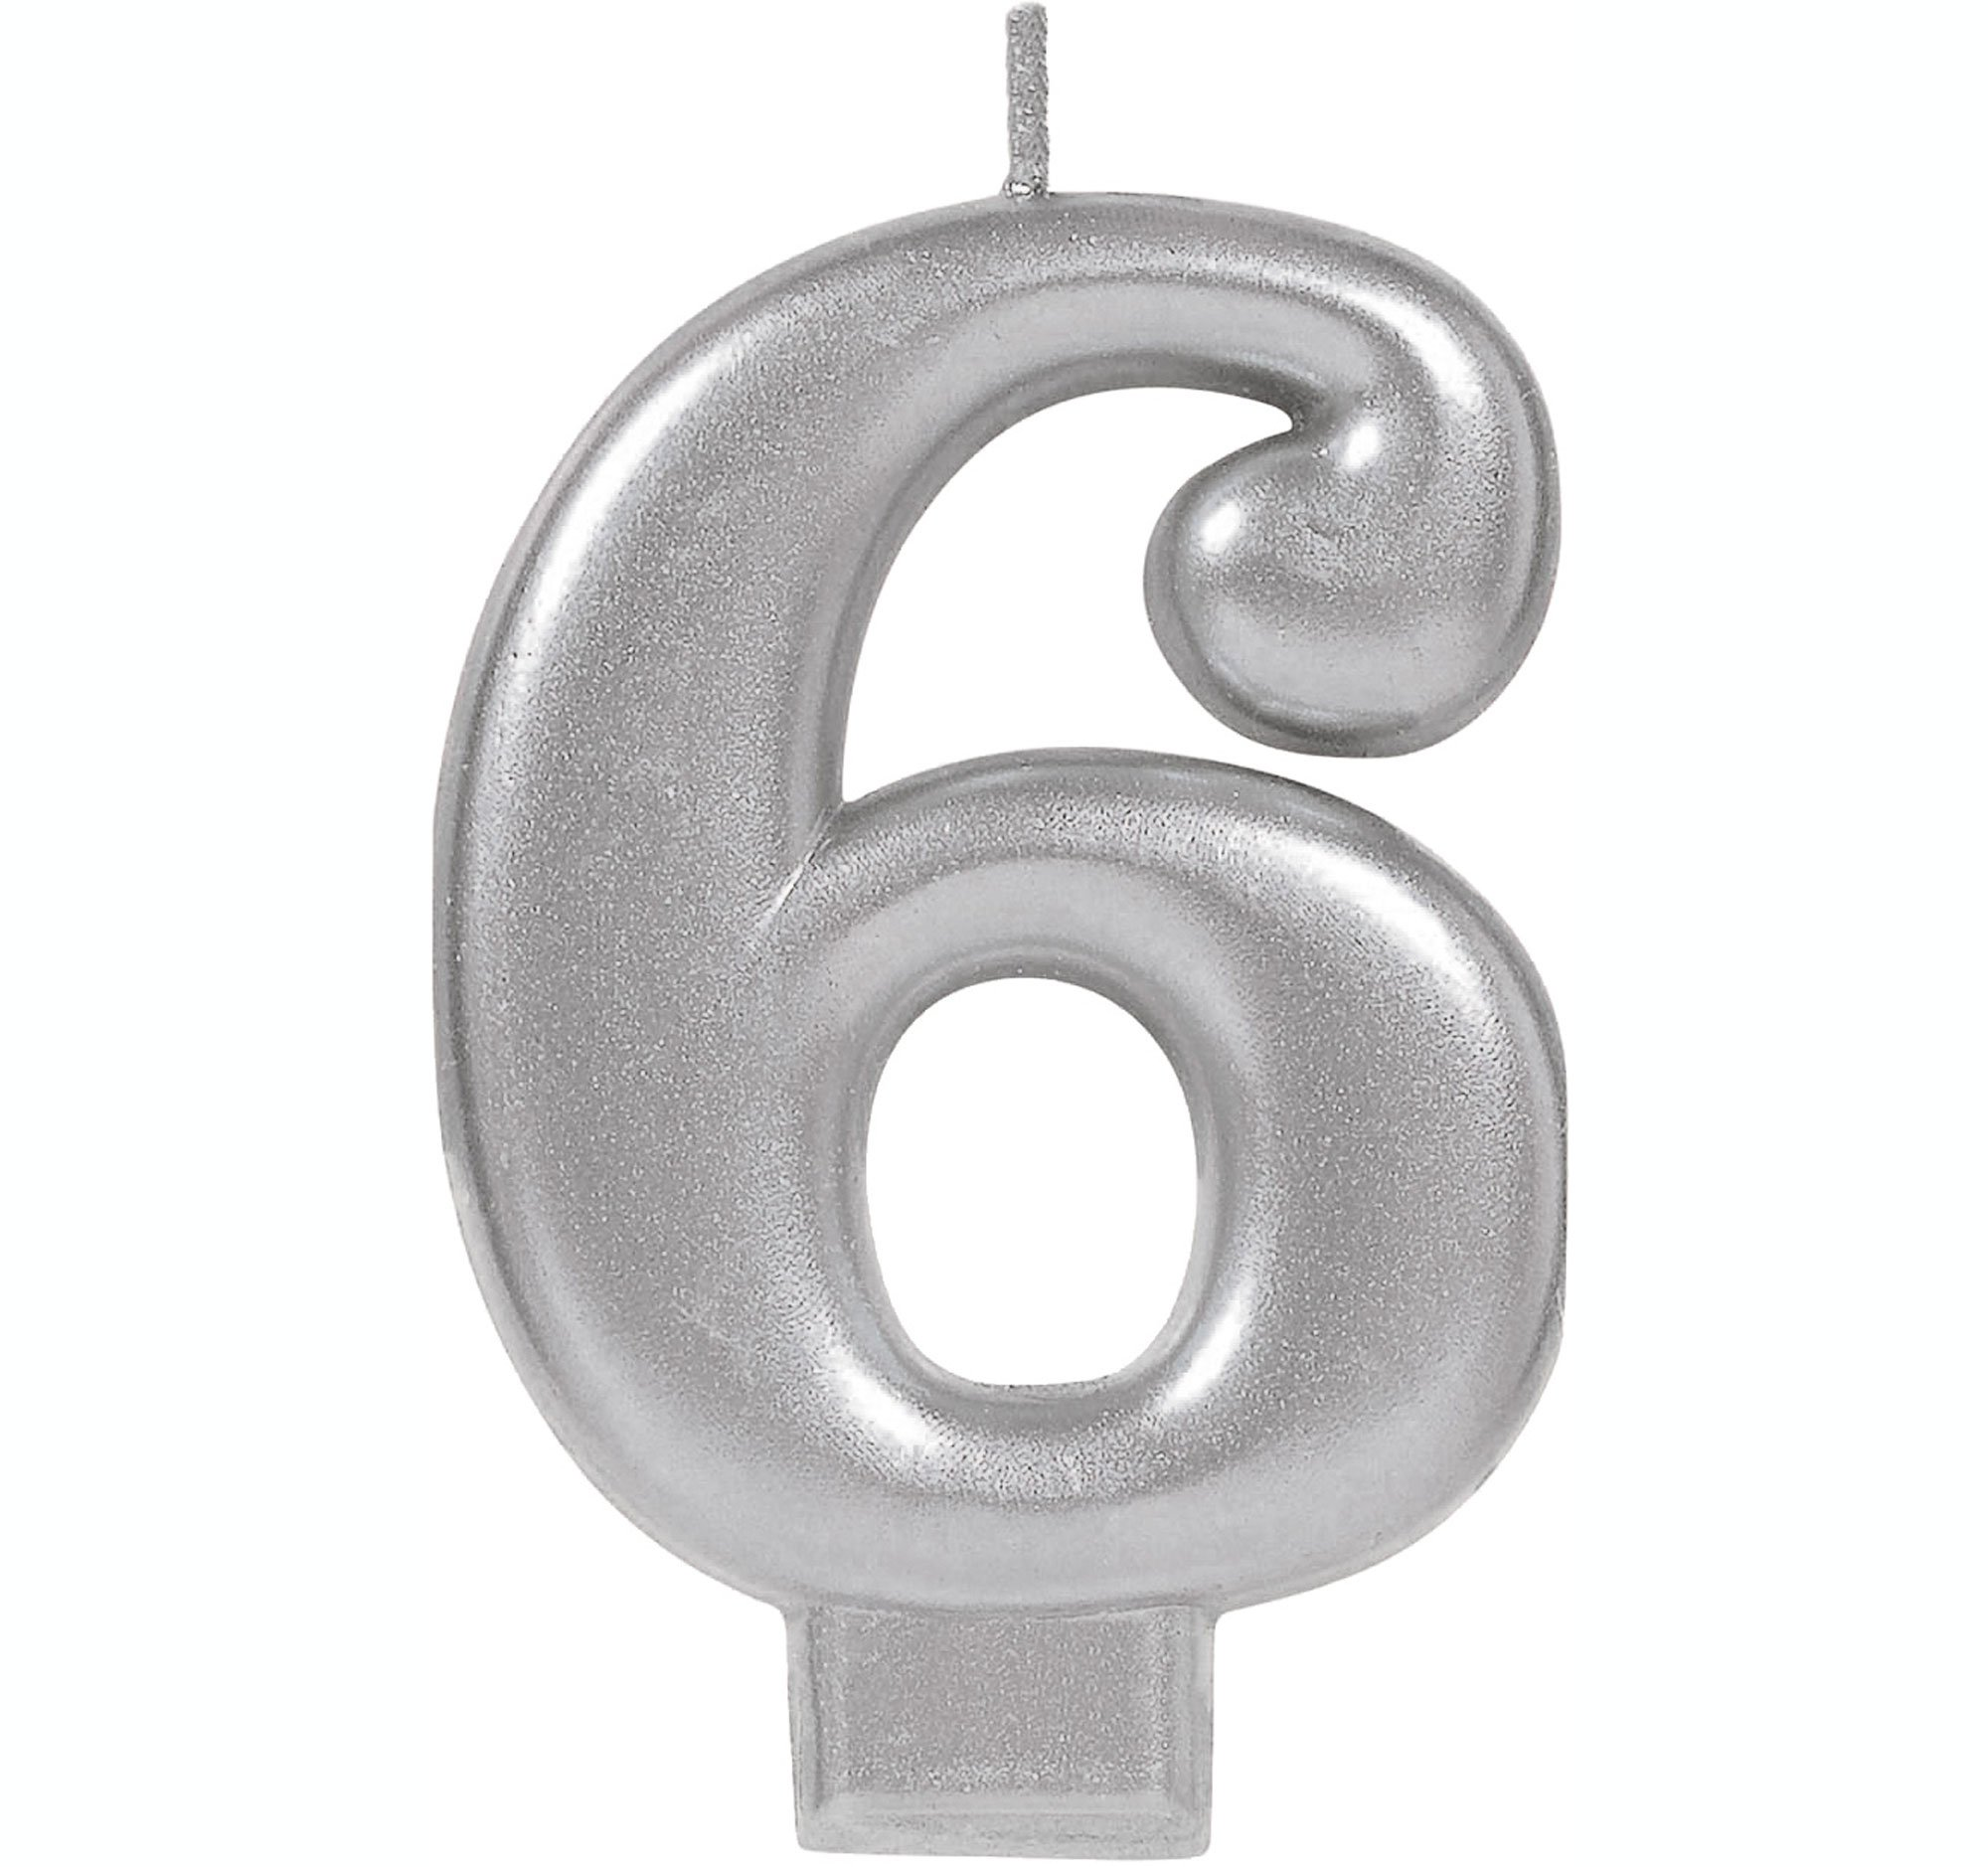 #6 Silver Metallic Numeral Moulded Candle